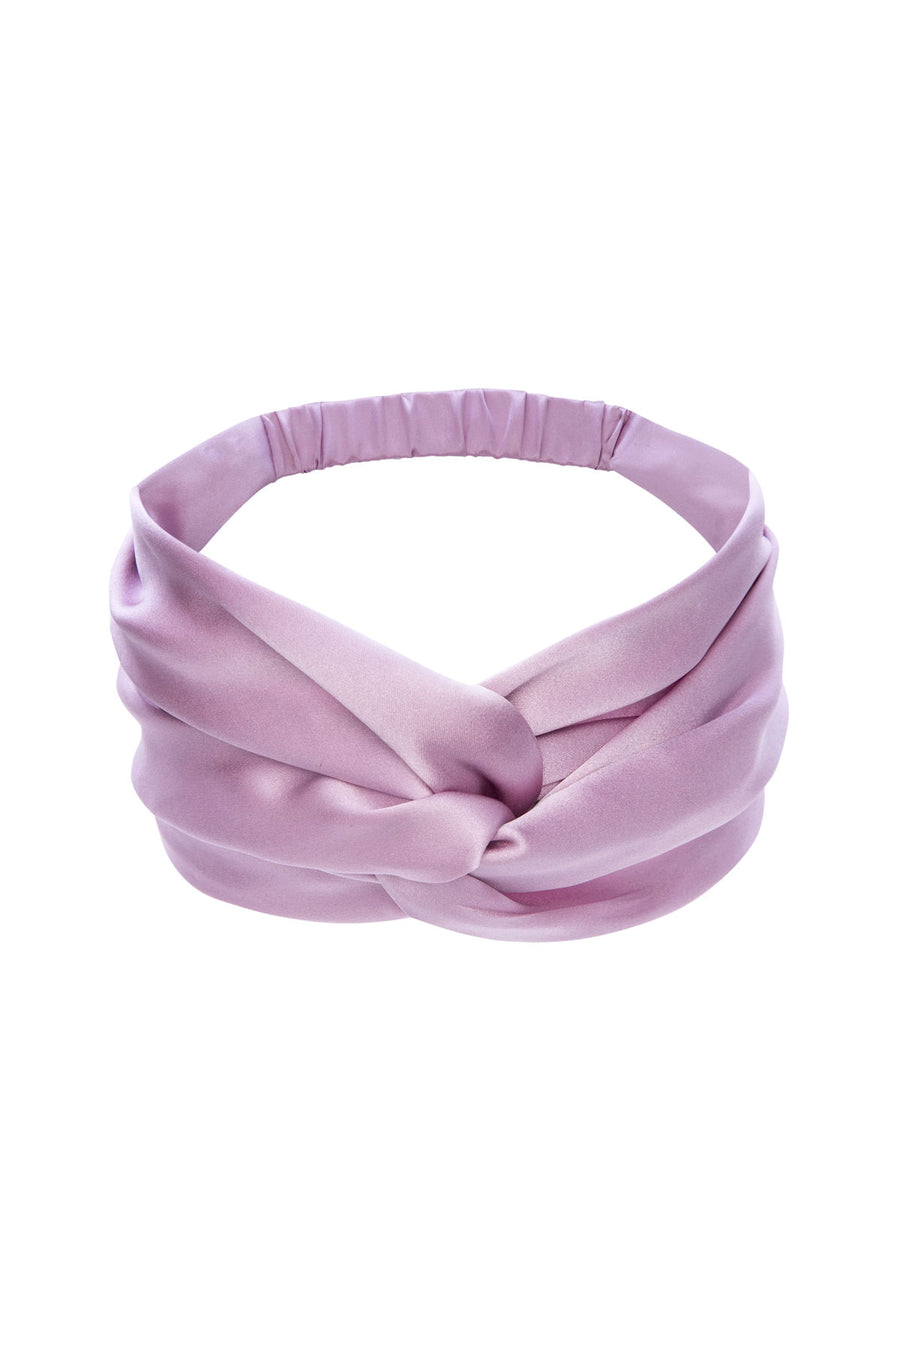 Silk Charmeuse 'Lovey' Headband: Orchid Pink